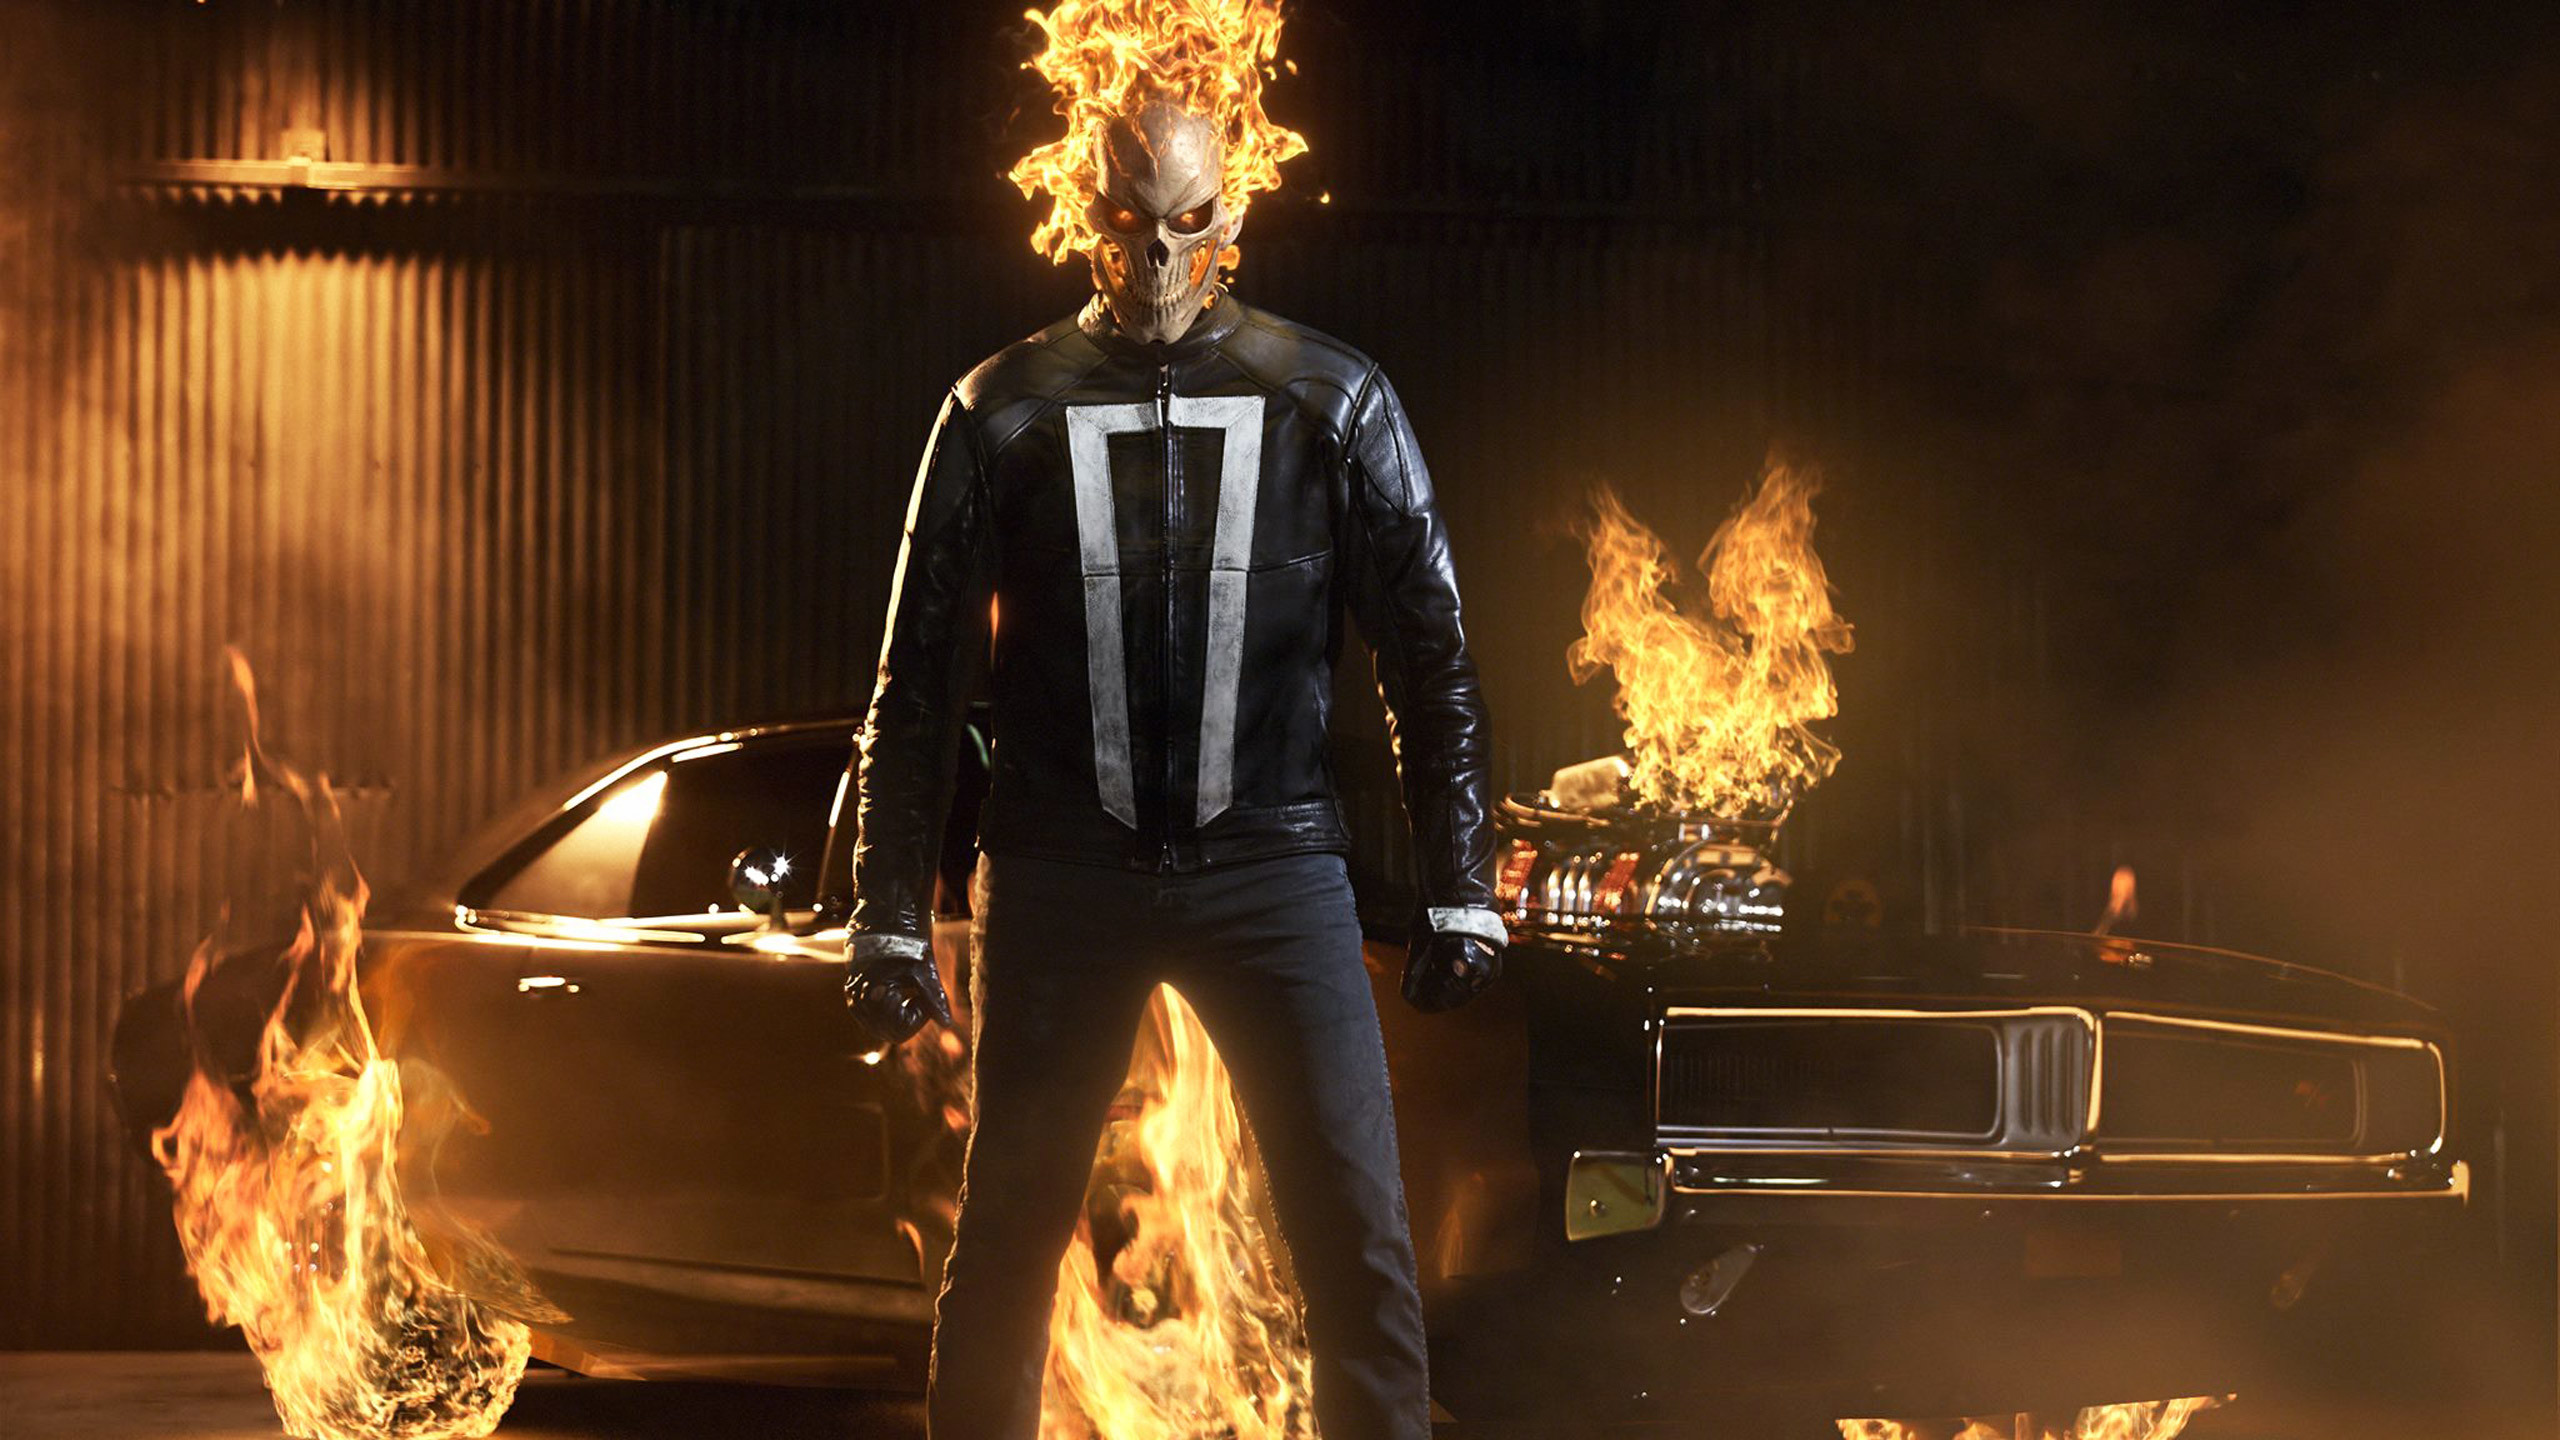 2560x1440 TV Series / Ghost Rider Wallpaper. Ghost Rider, Agents of SHIELD ...